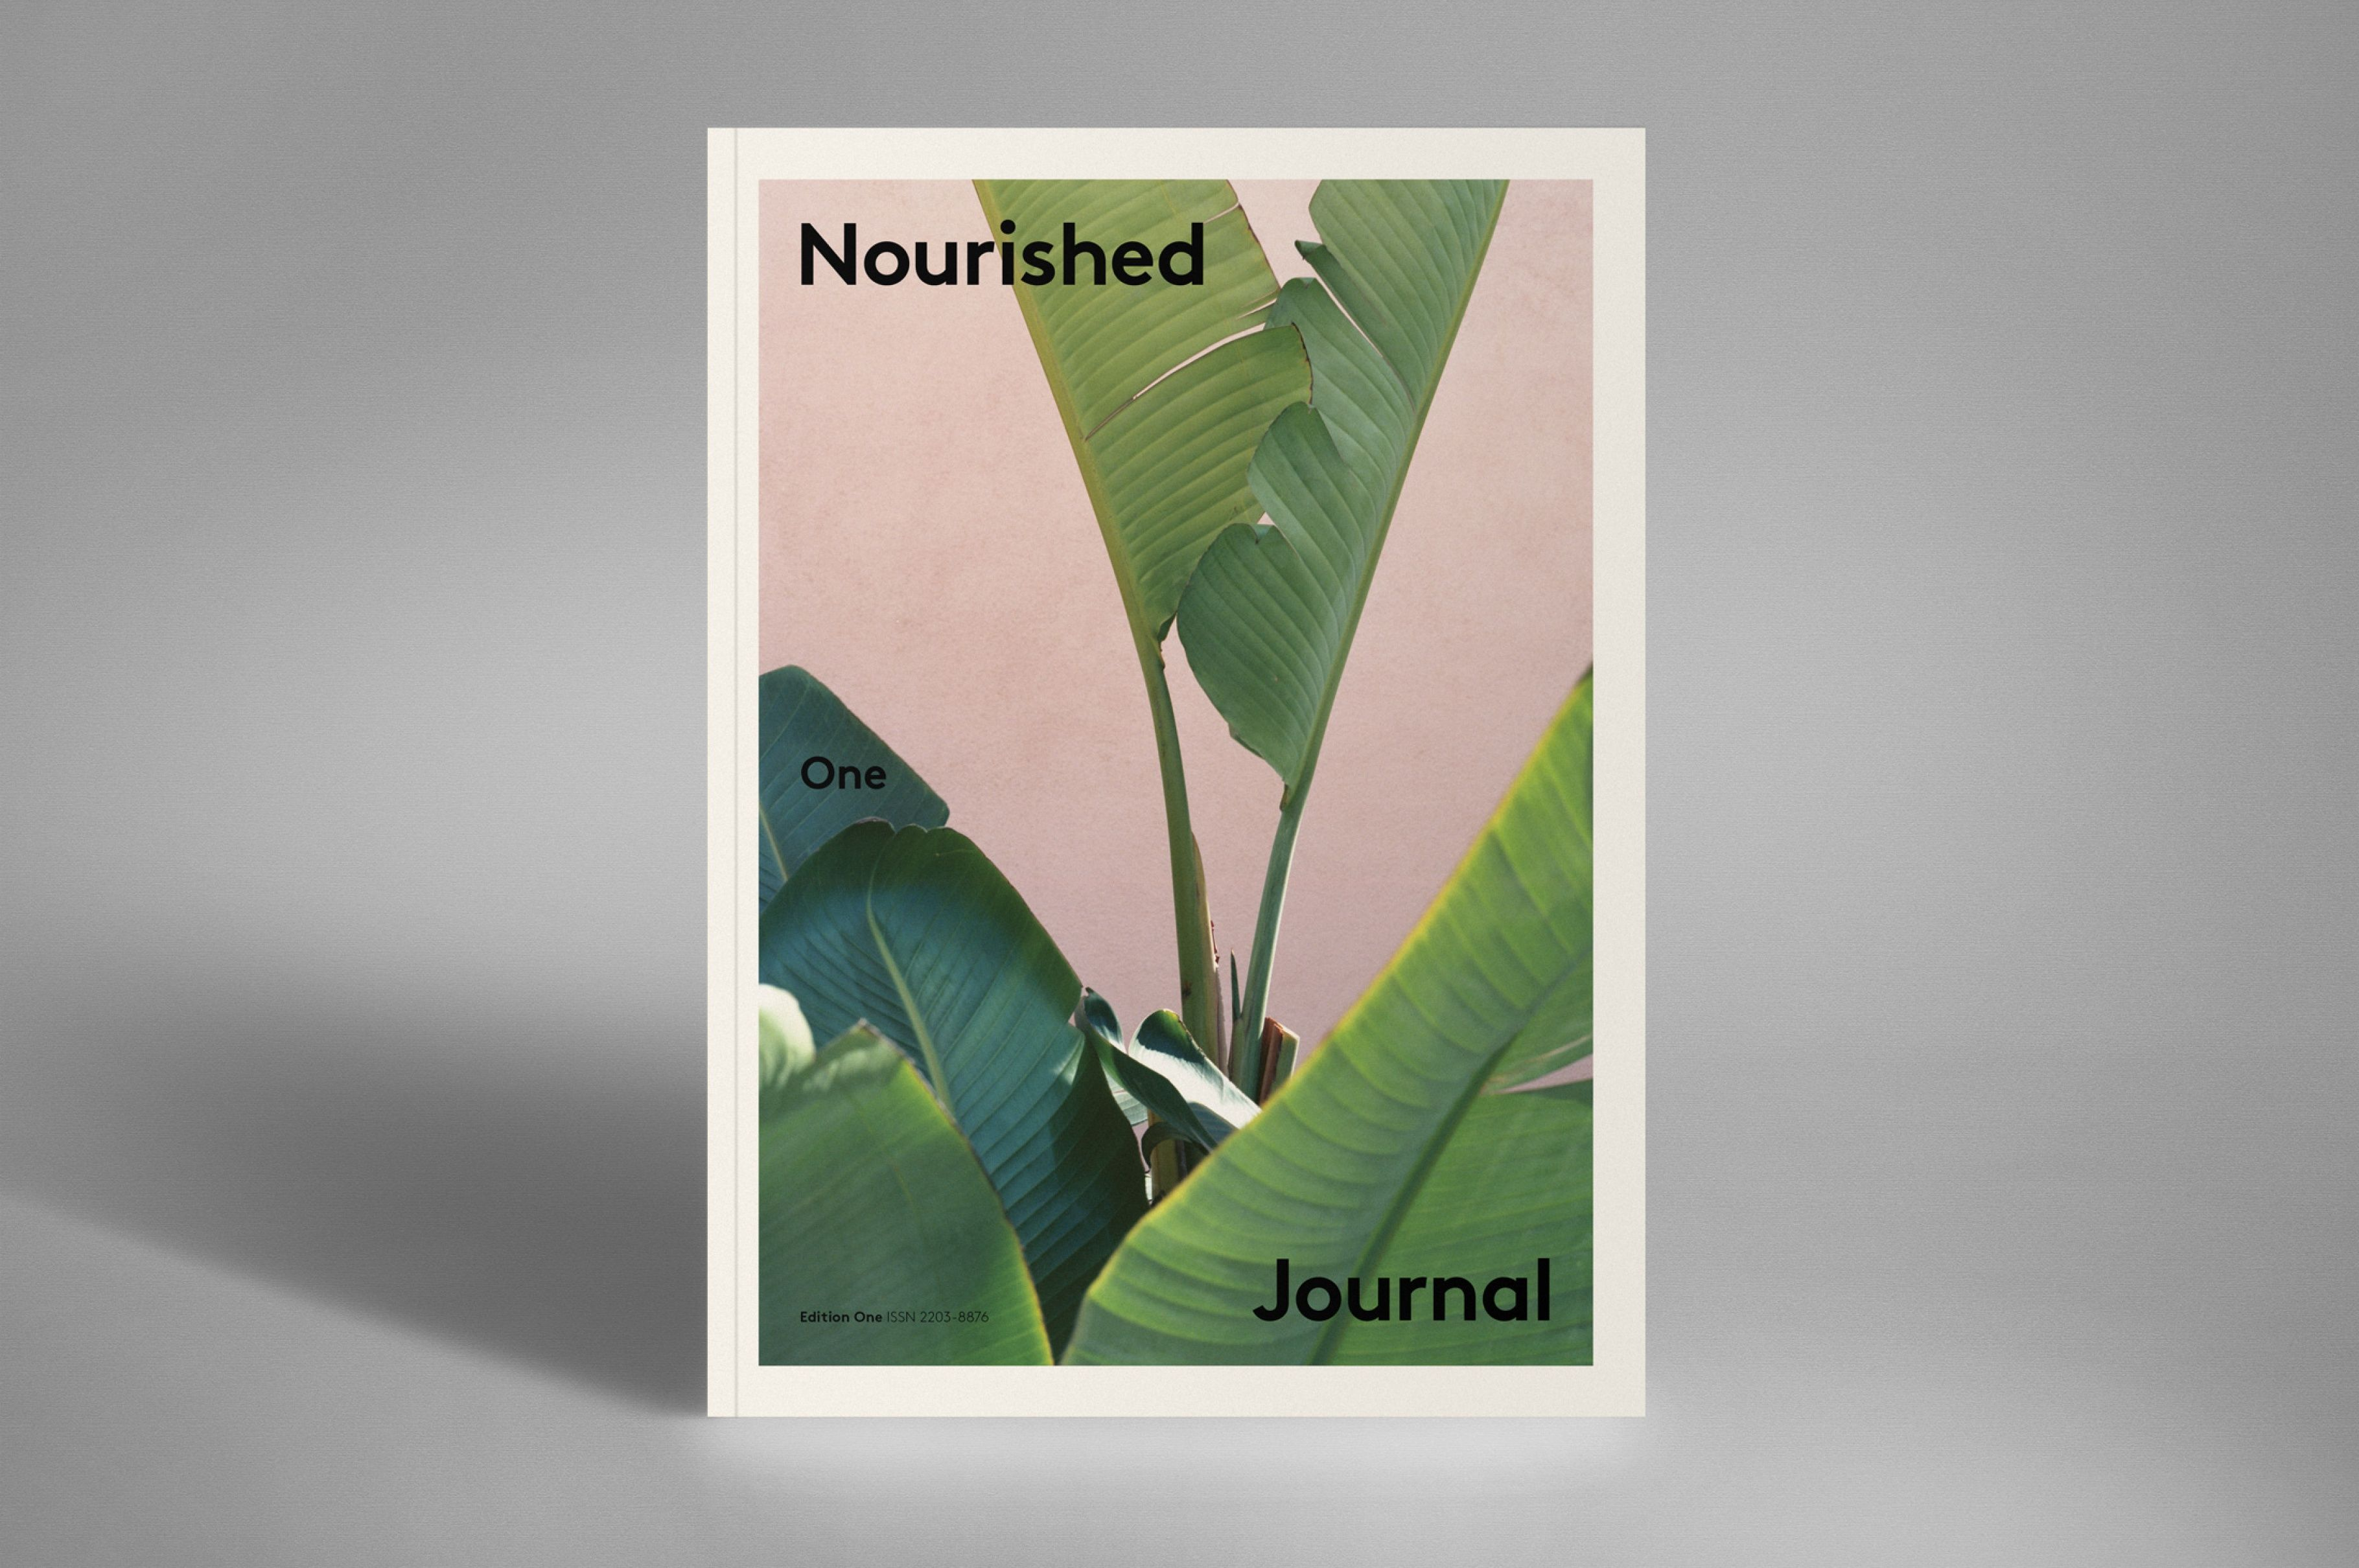 Nourished Journal | Edition One